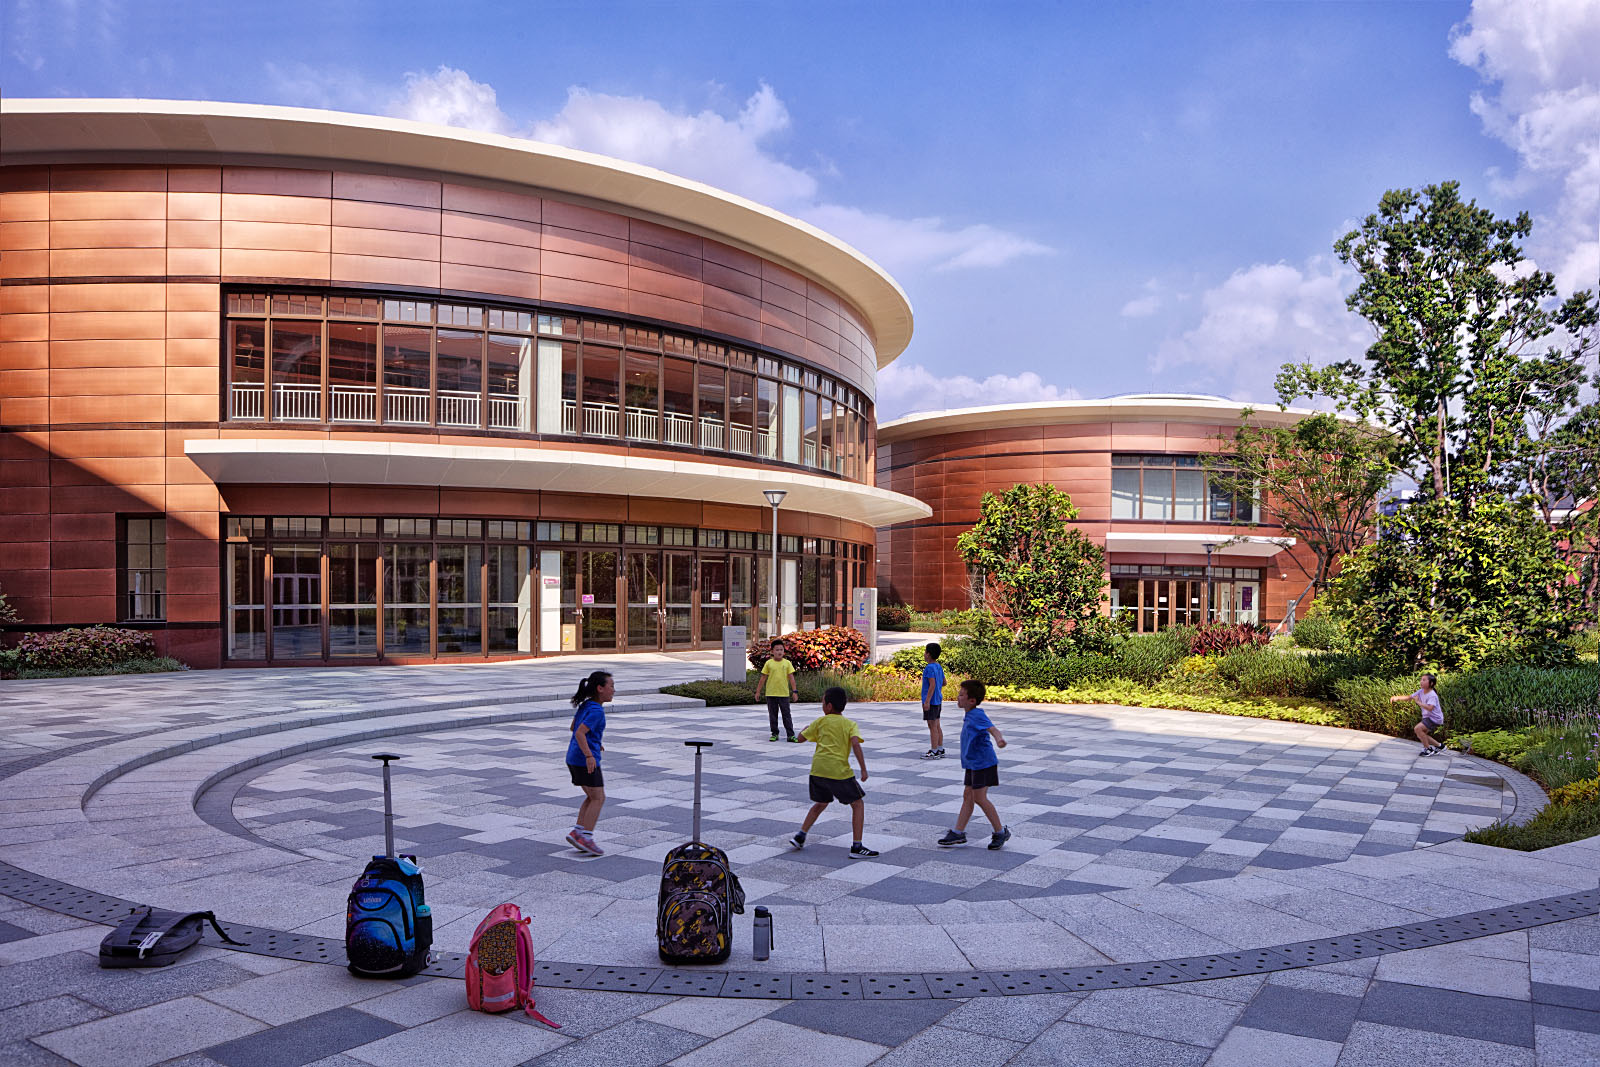 Exterior architectural photography by Paul Dingman of international schools in China. Paul Dingman designs architectural photographs for architects.